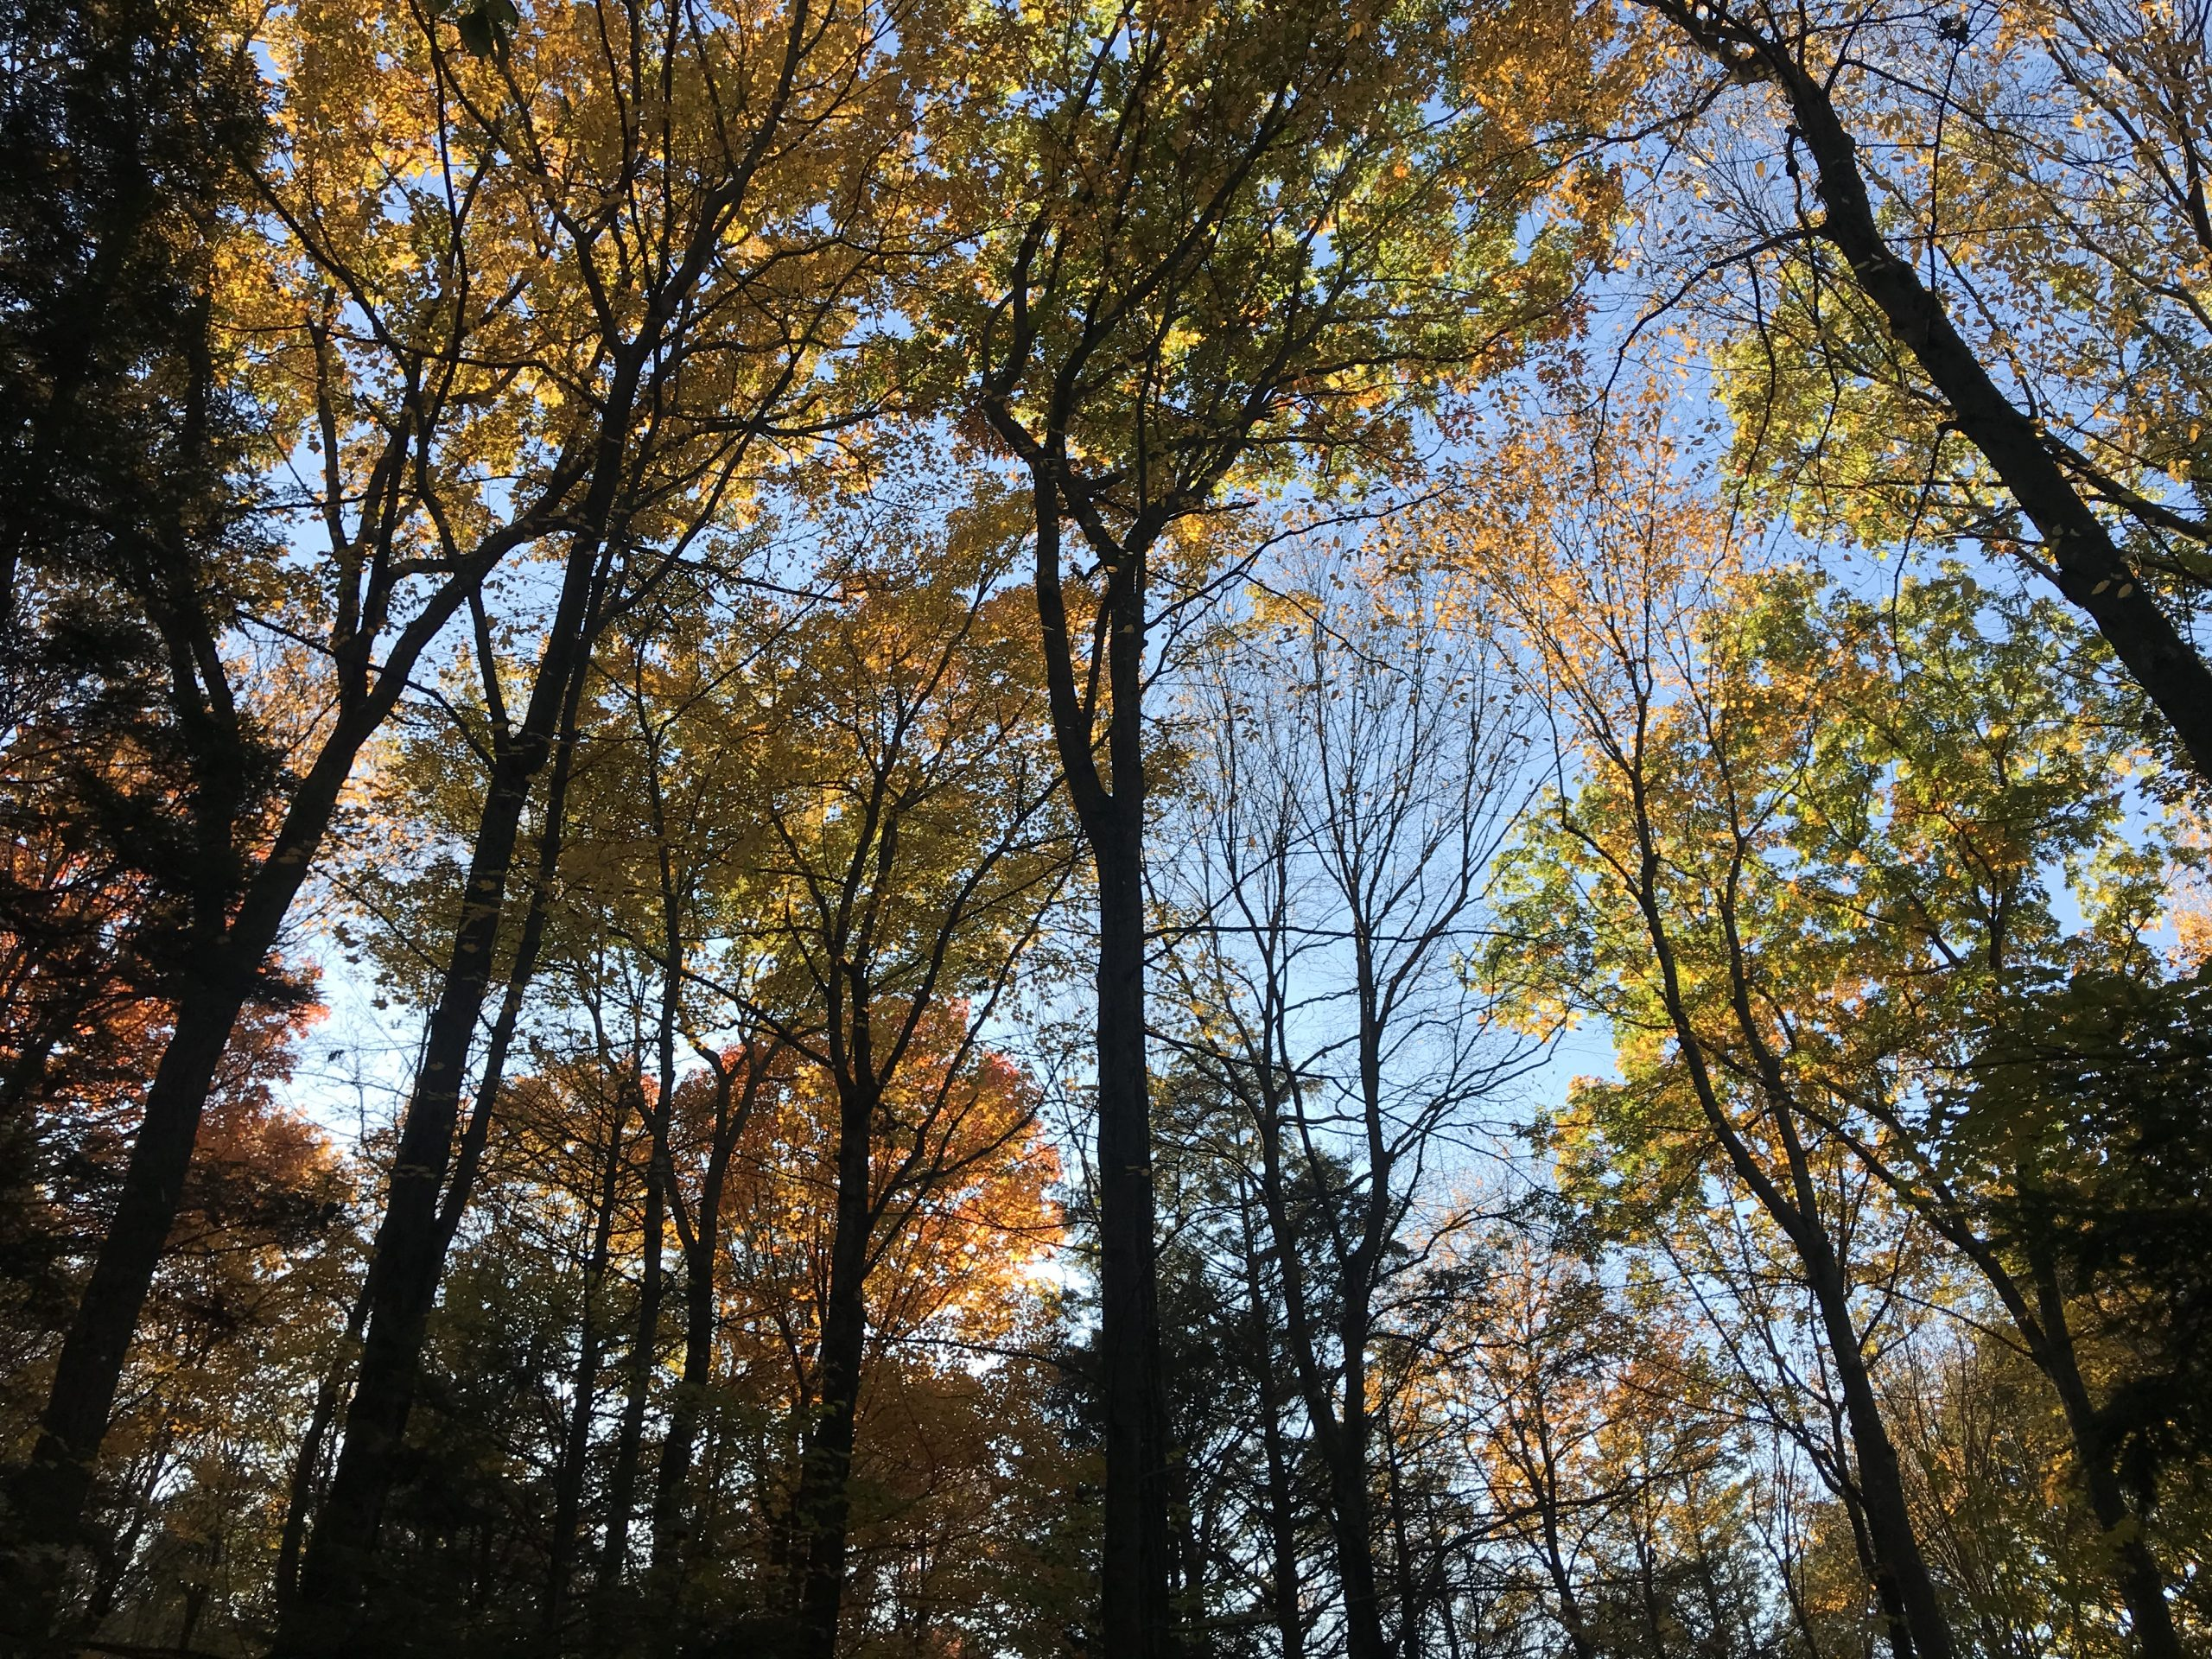 Autumn view from Robert Frost Trail